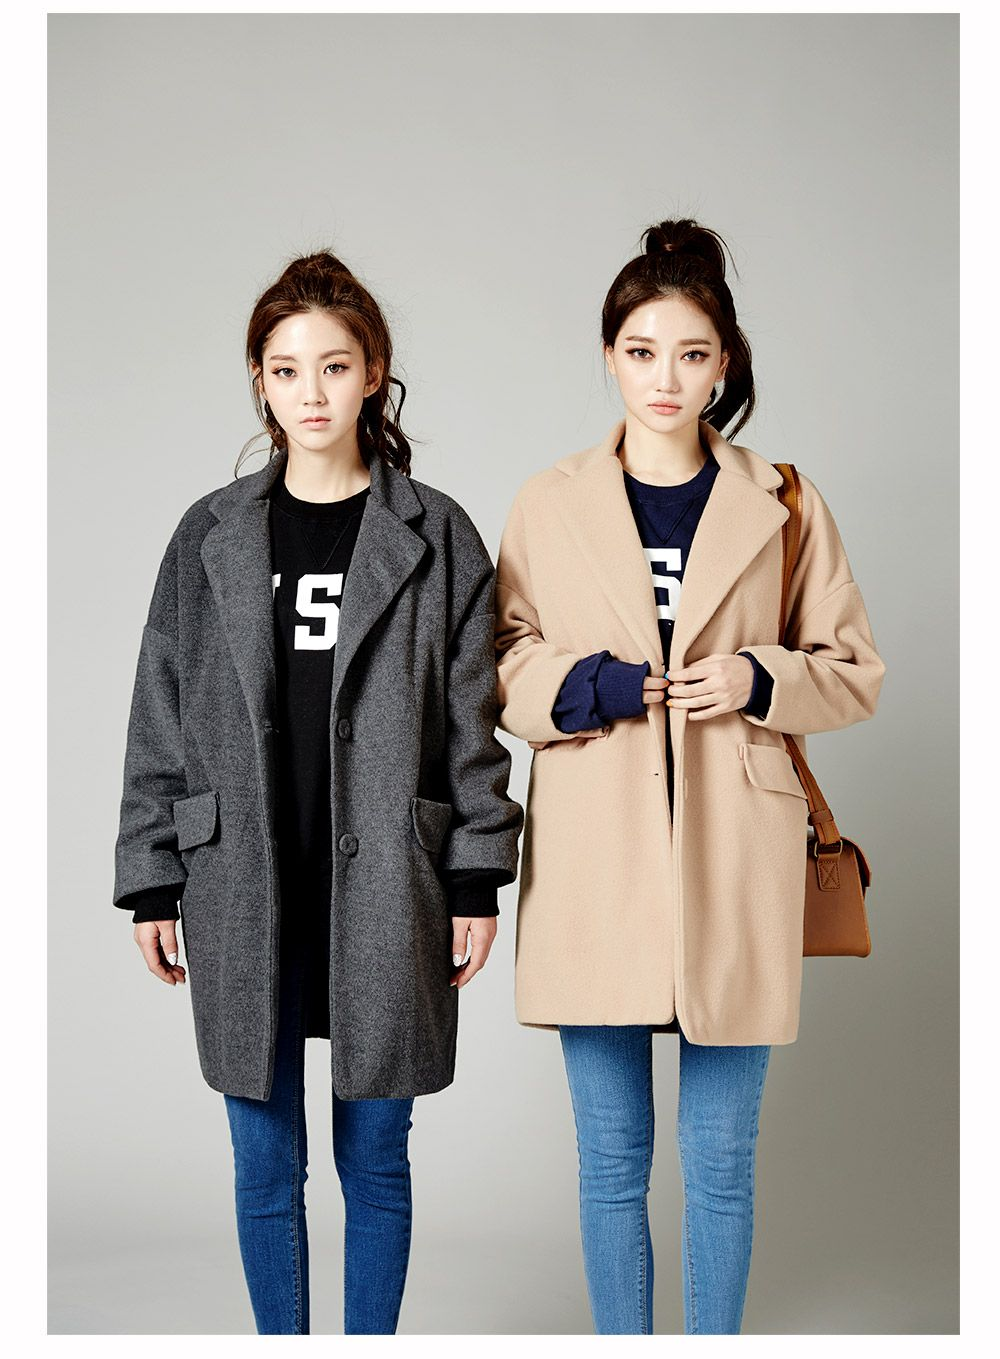 Wear spring JK  Korean fashion winter, Korean outfits, Fashion